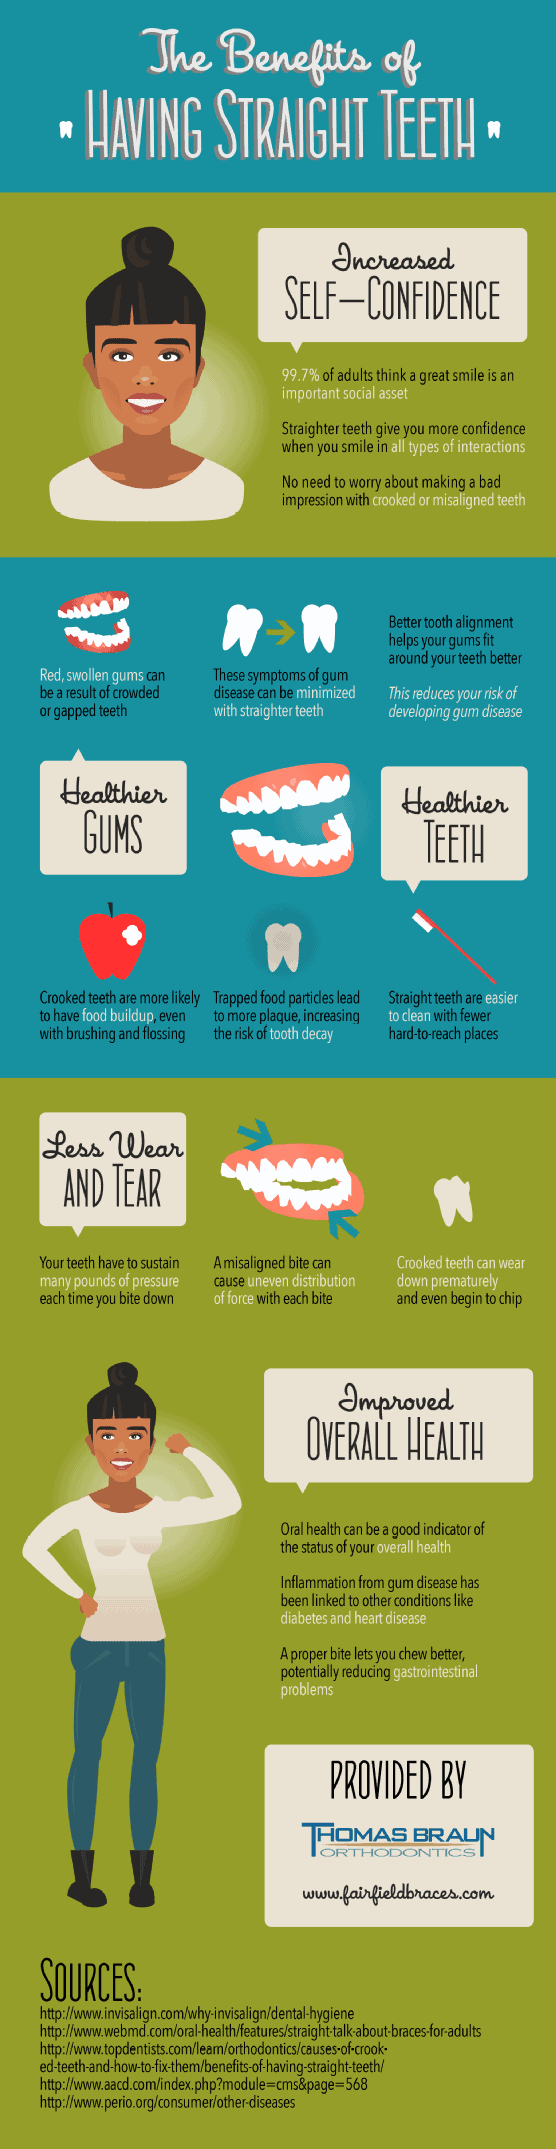 the-benefits-of-having-straight-teeth_52a751ab0fd22